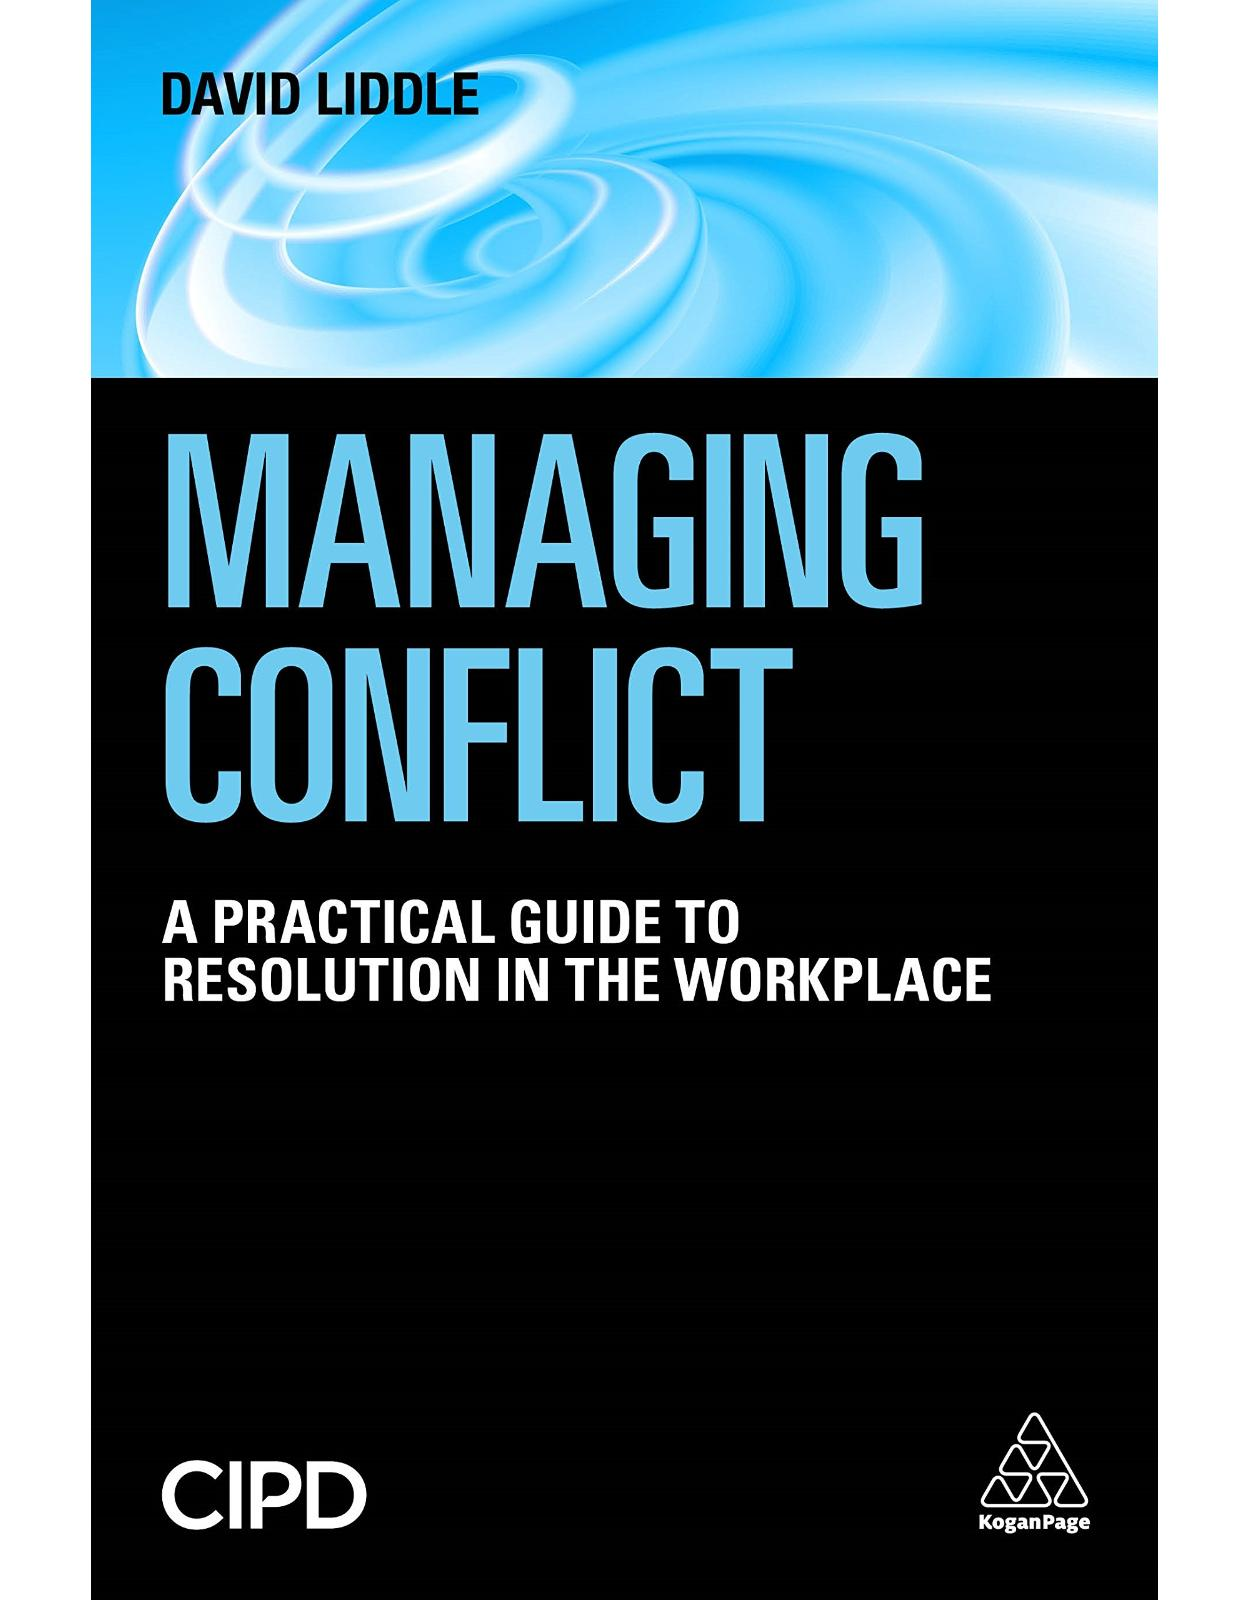 Managing Conflict: A Practical Guide to Resolution in the Workplace